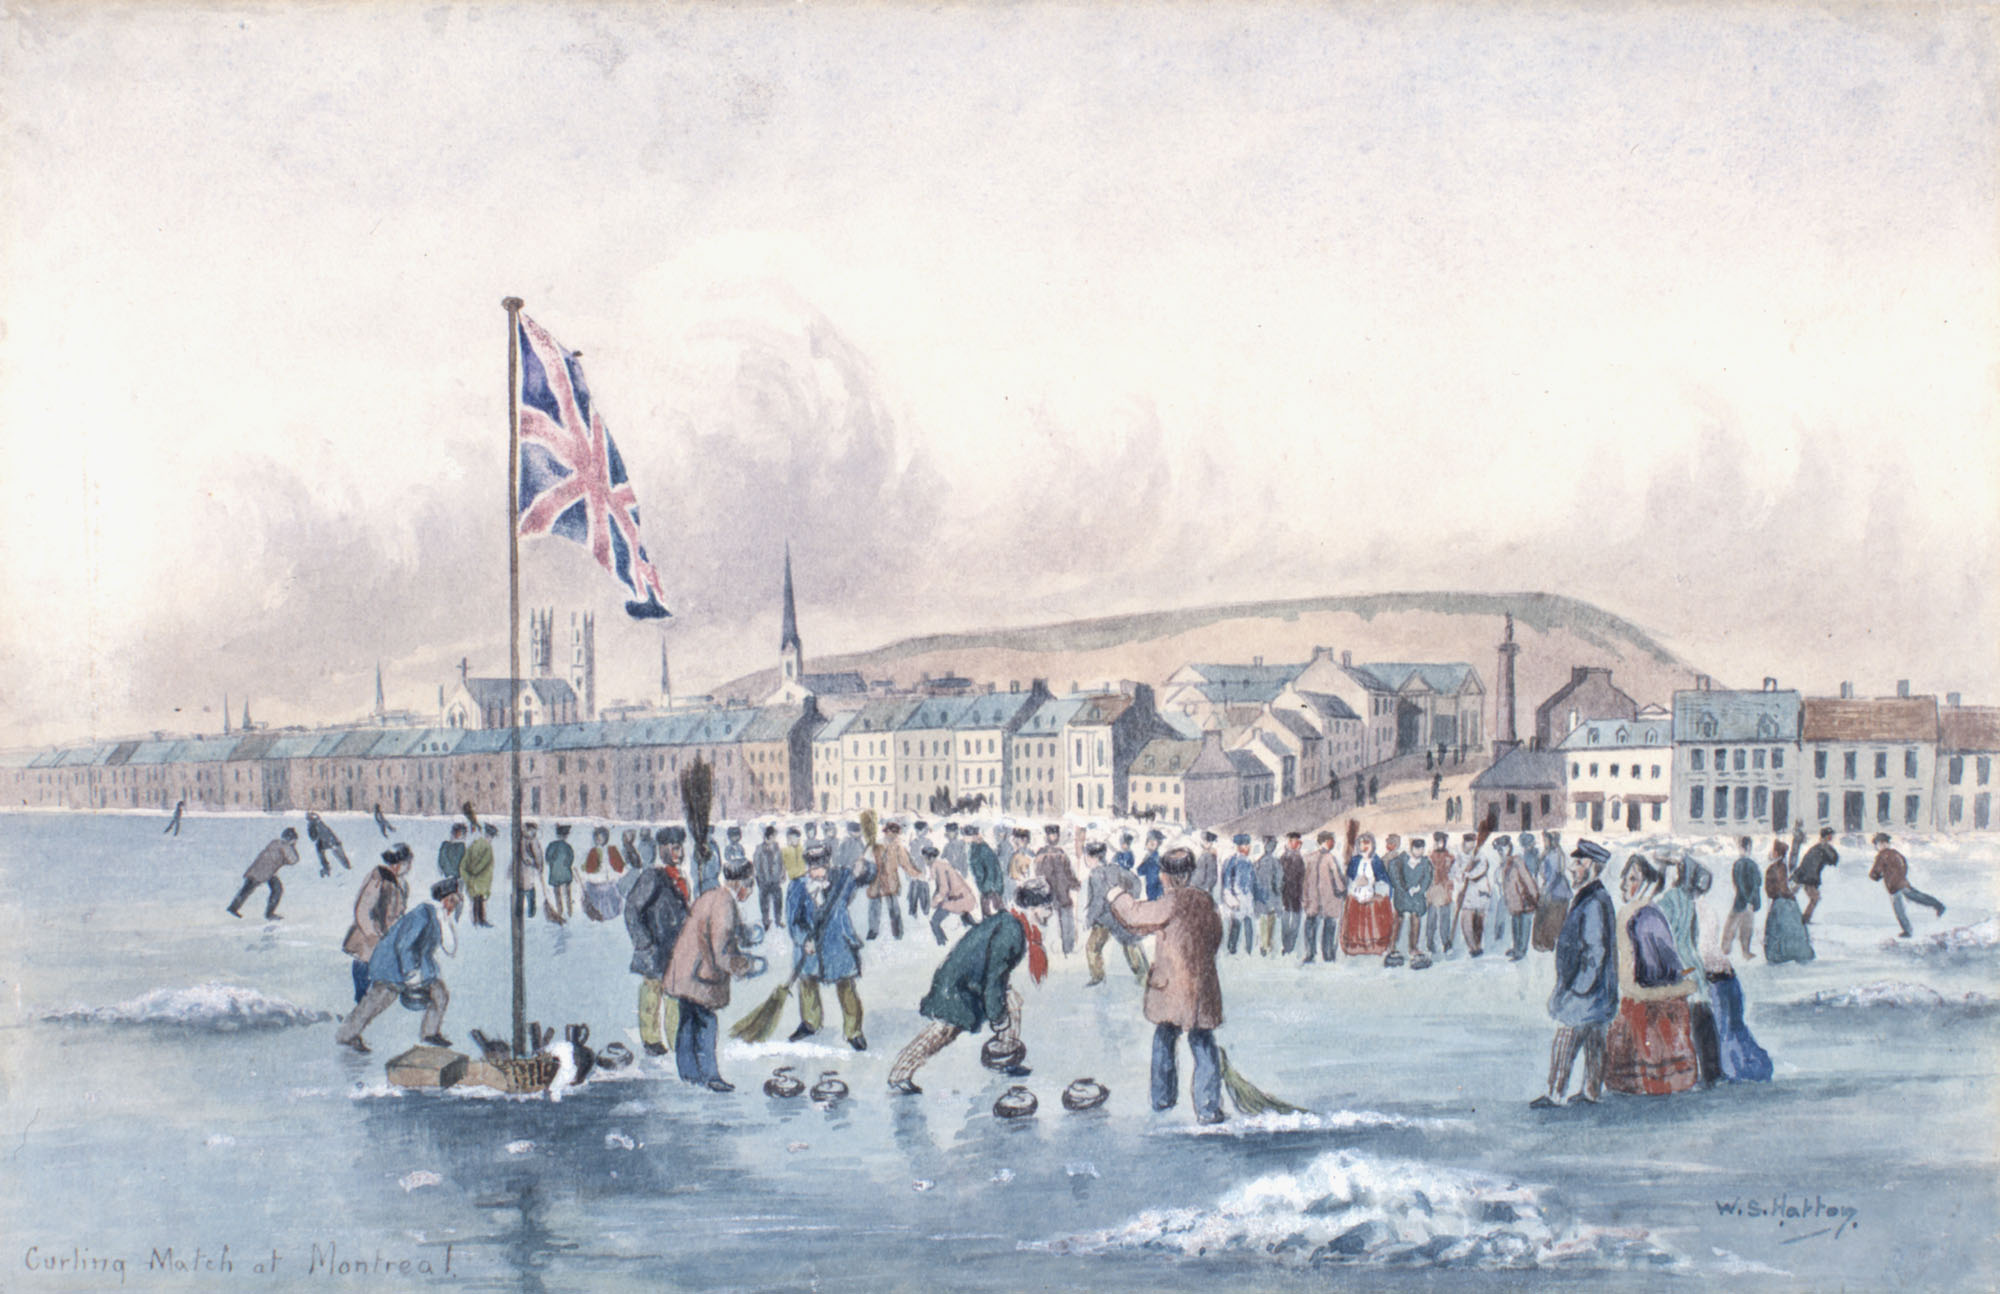 Curling Match at Montreal, Canada East by W.S. Hatton, 1855